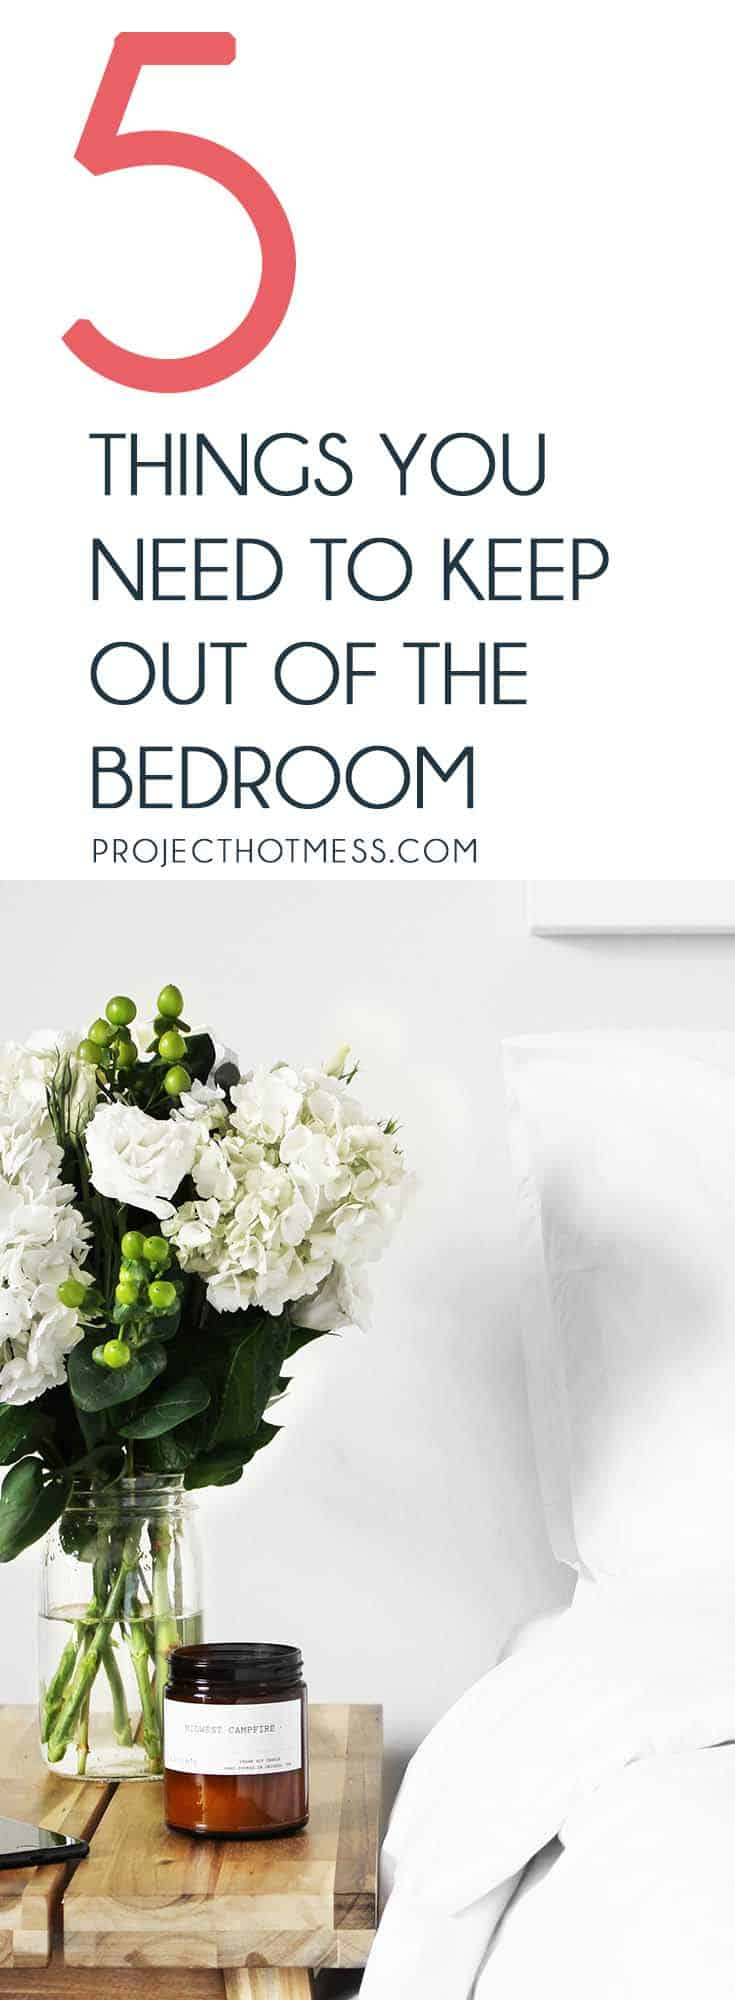 Your bedroom is supposed to be your sanctuary, but can quickly become a room of chaos. Here are 5 things to keep out of the bedroom to keep it calm and cozy.  Keeping House | Bedroom Styling | Bedroom Organisation | Hygge Bedroom | Calm Bedroom |